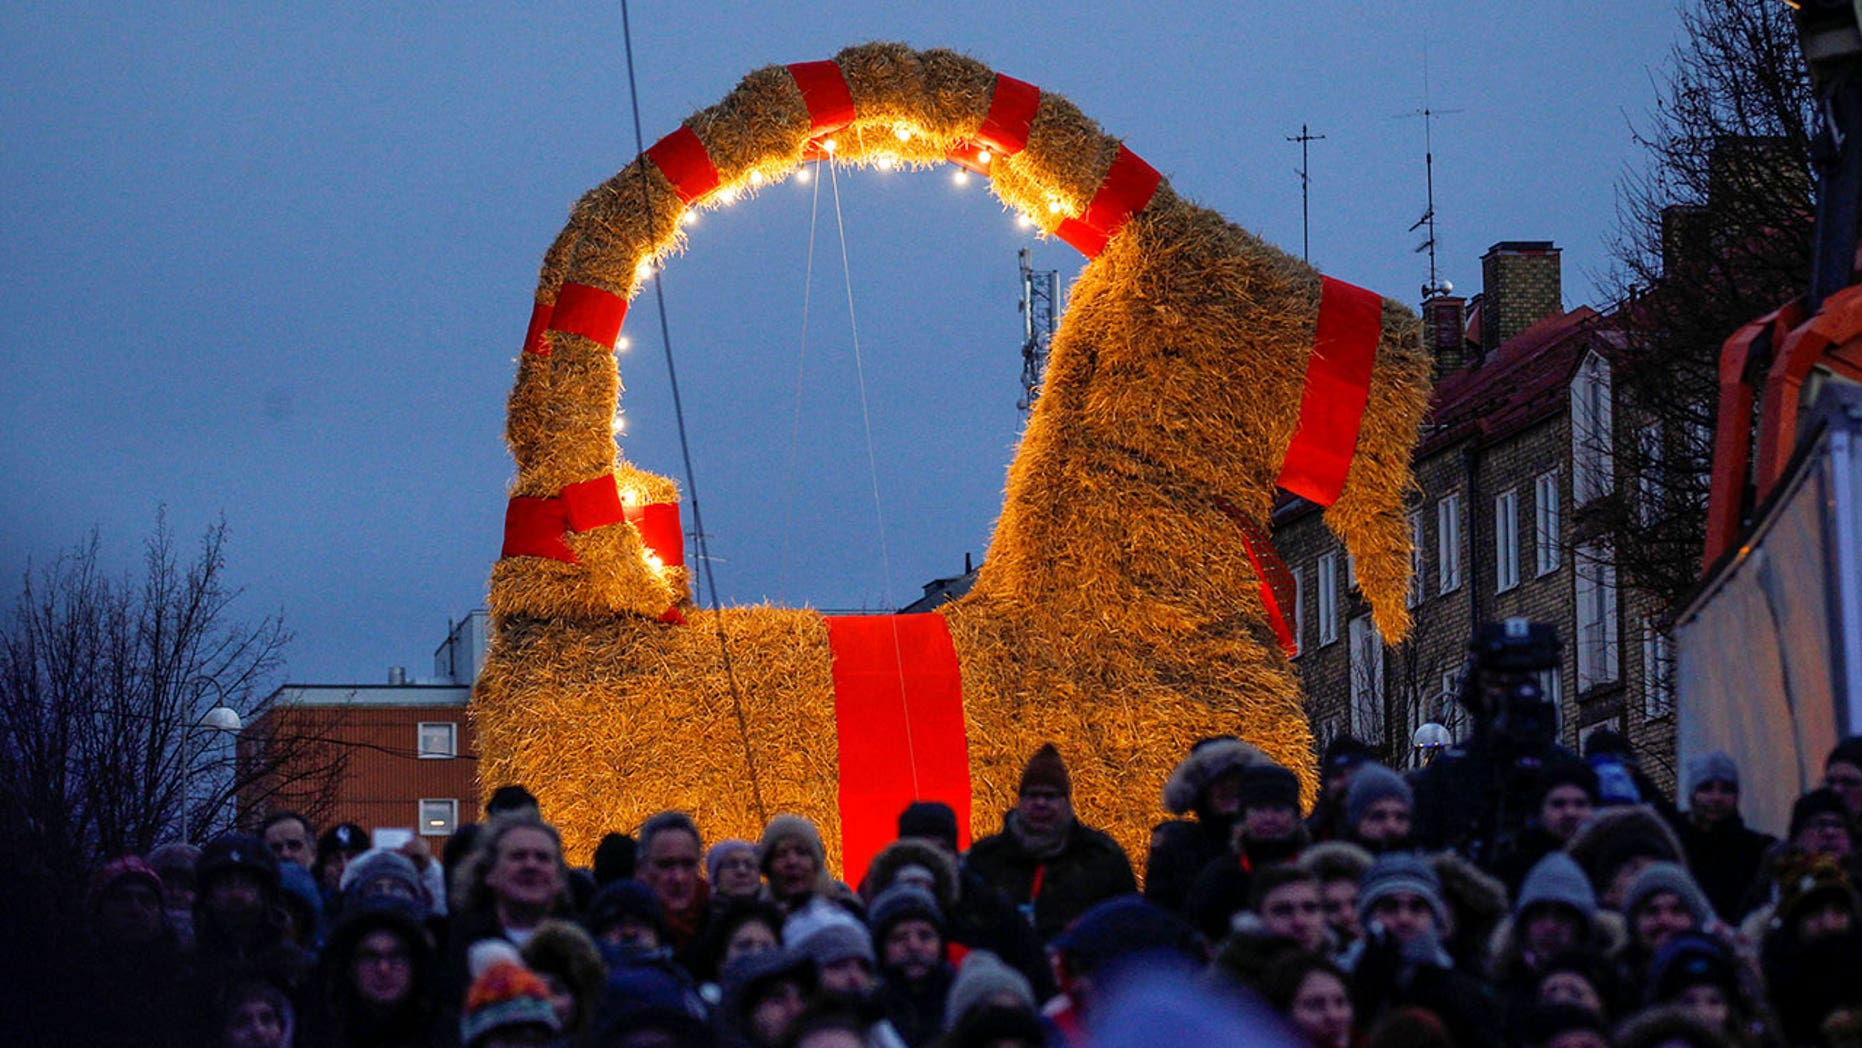 The traditional straw goat is displayed in Gavle, Sweden, in late Nov. 2016.